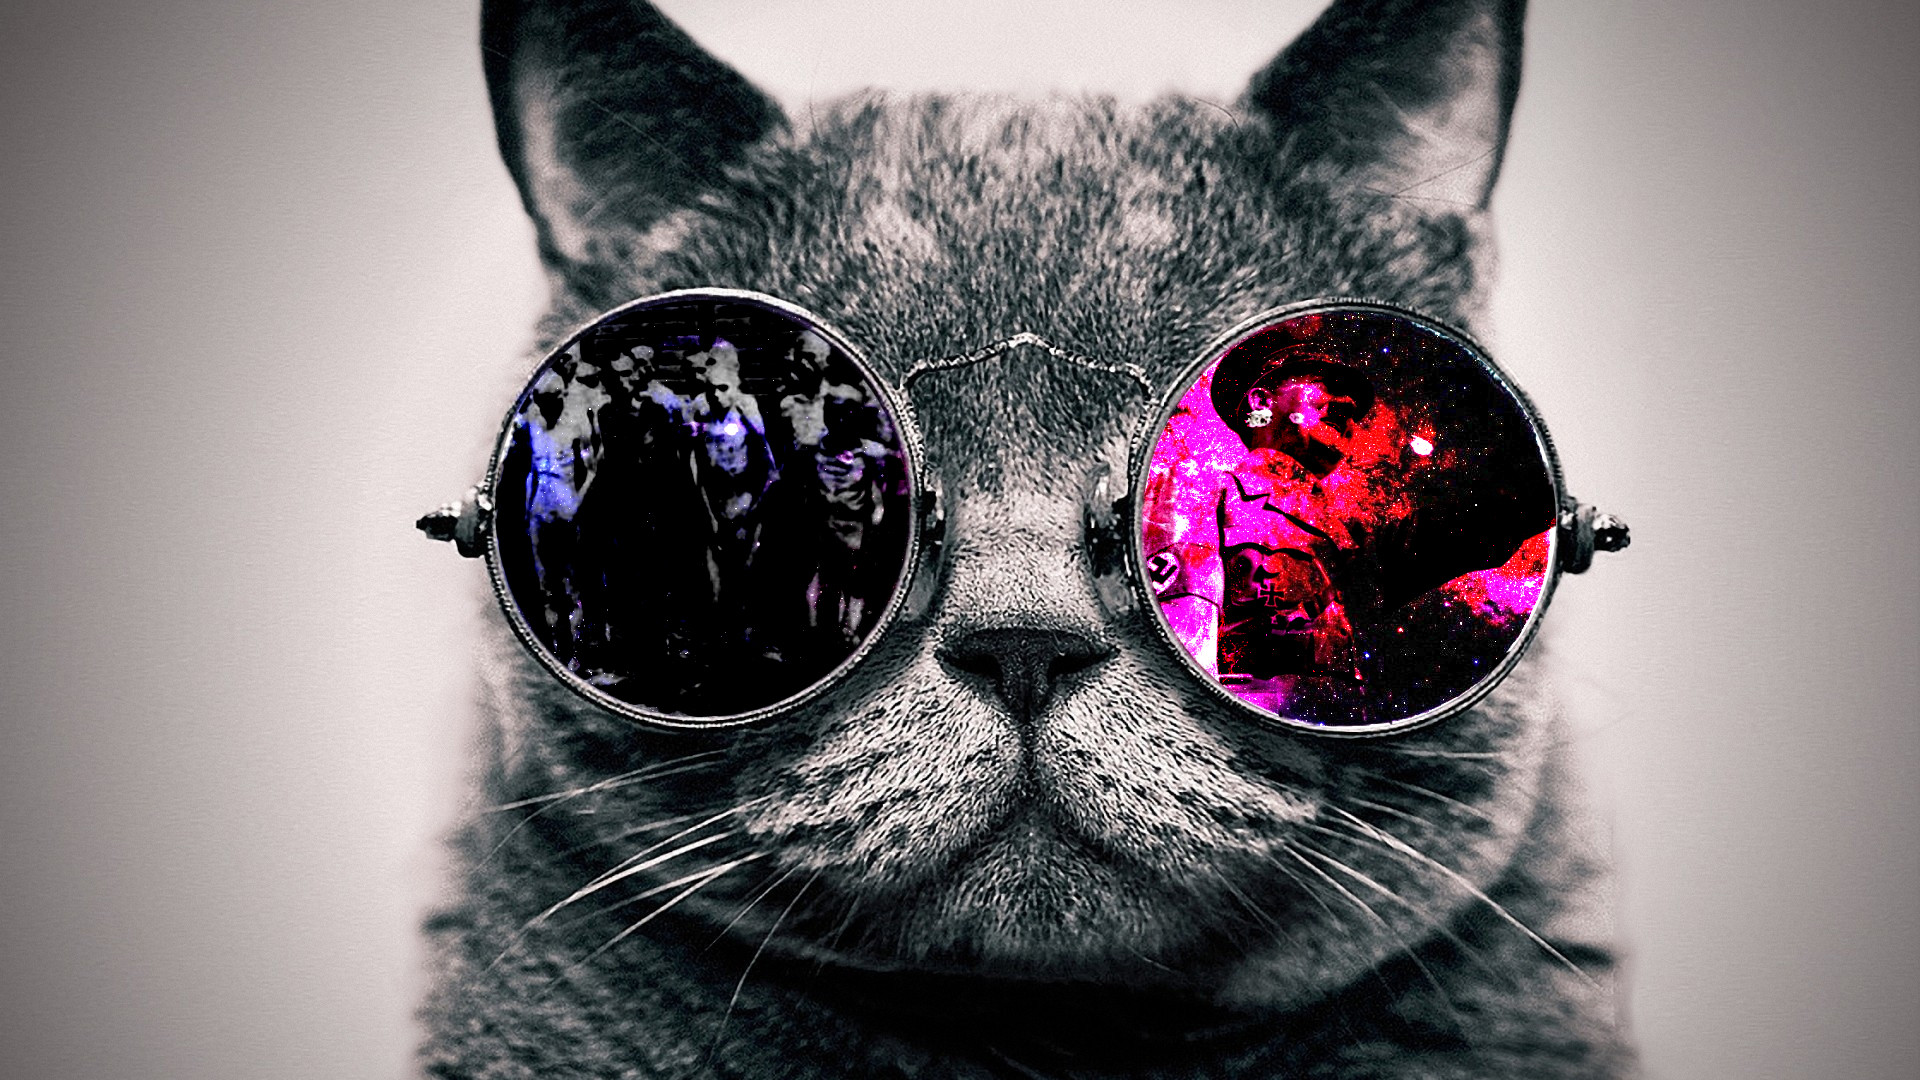 Epic Cat Wallpaper (73+ Images